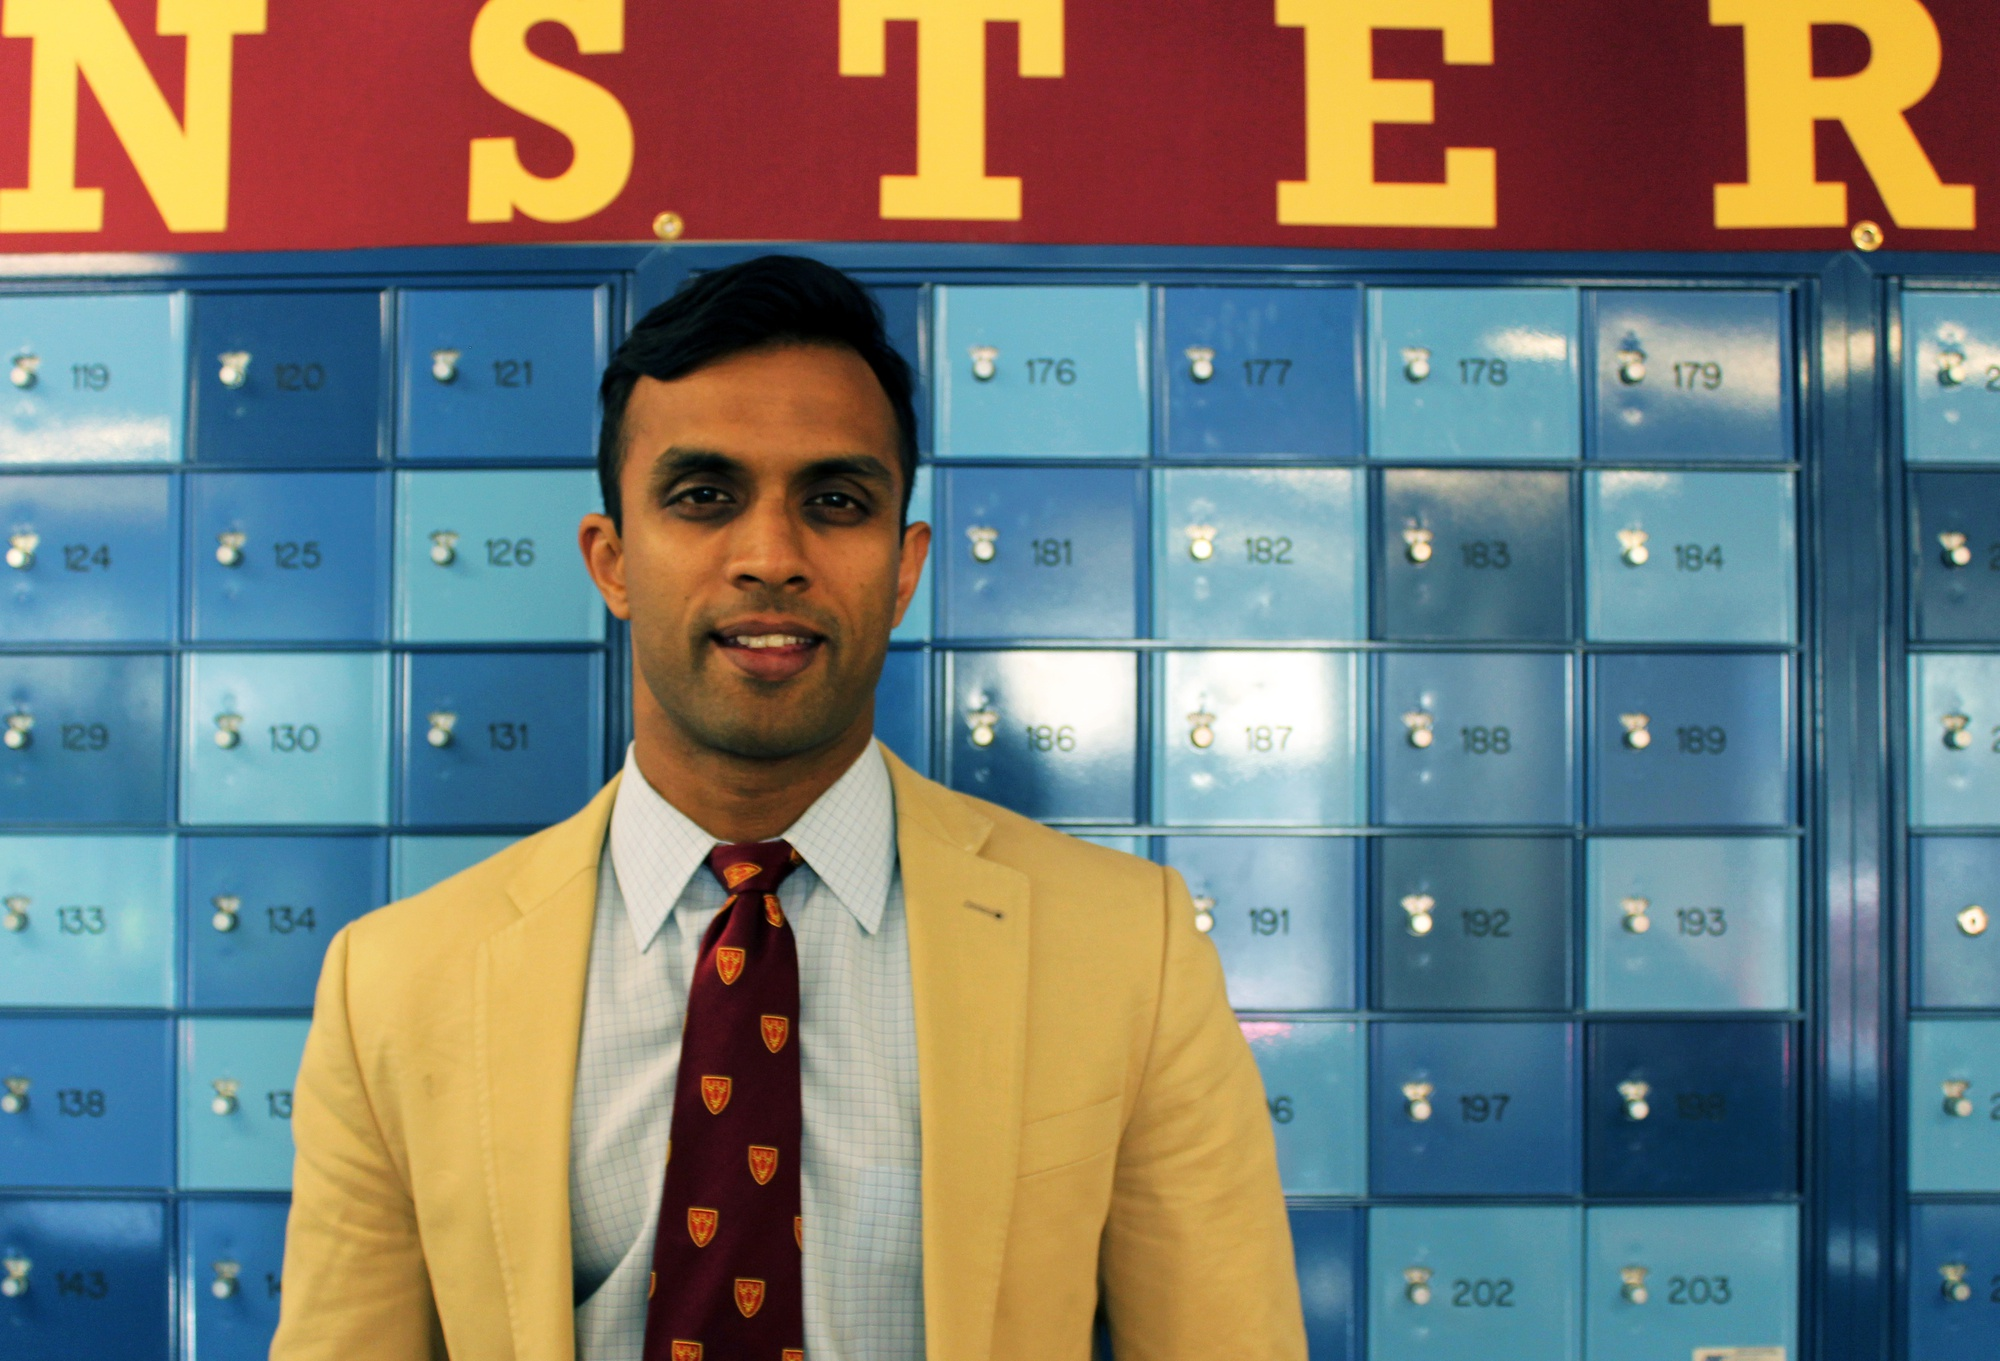 Avik Chatterjee '02, a former BGLTS, race relations, and pre-med tutor in Dunster House and now a tutor in Currier, poses before attending the Dunster Senior Dinner in May 2015.